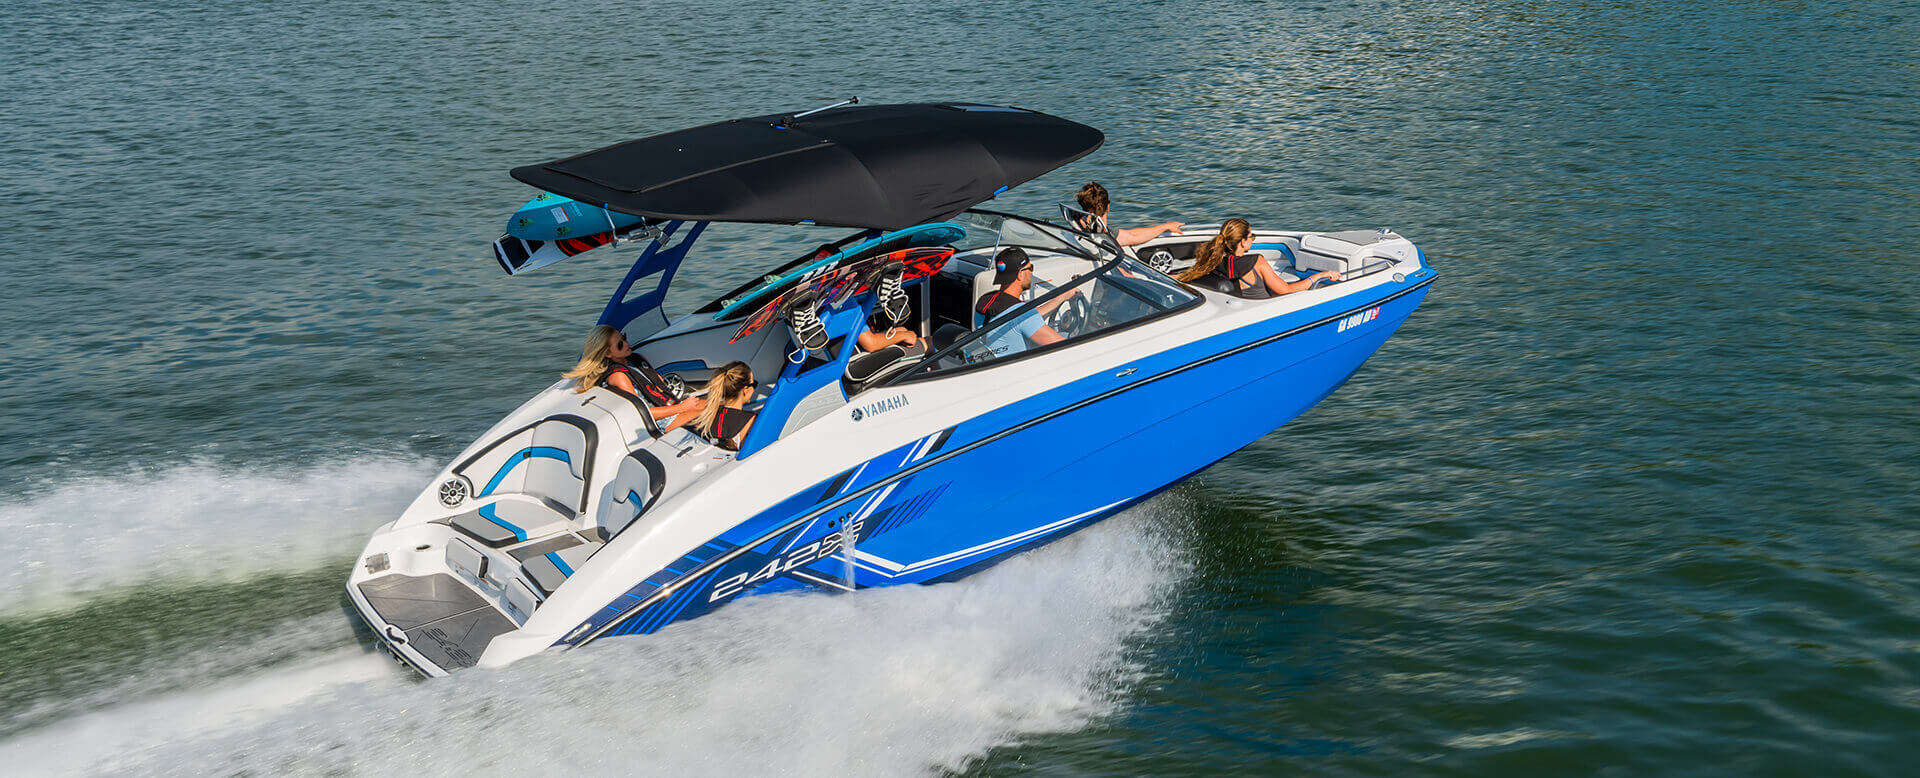 yamaha-boats-2019-242x-blue-friends-boating-outing-hero